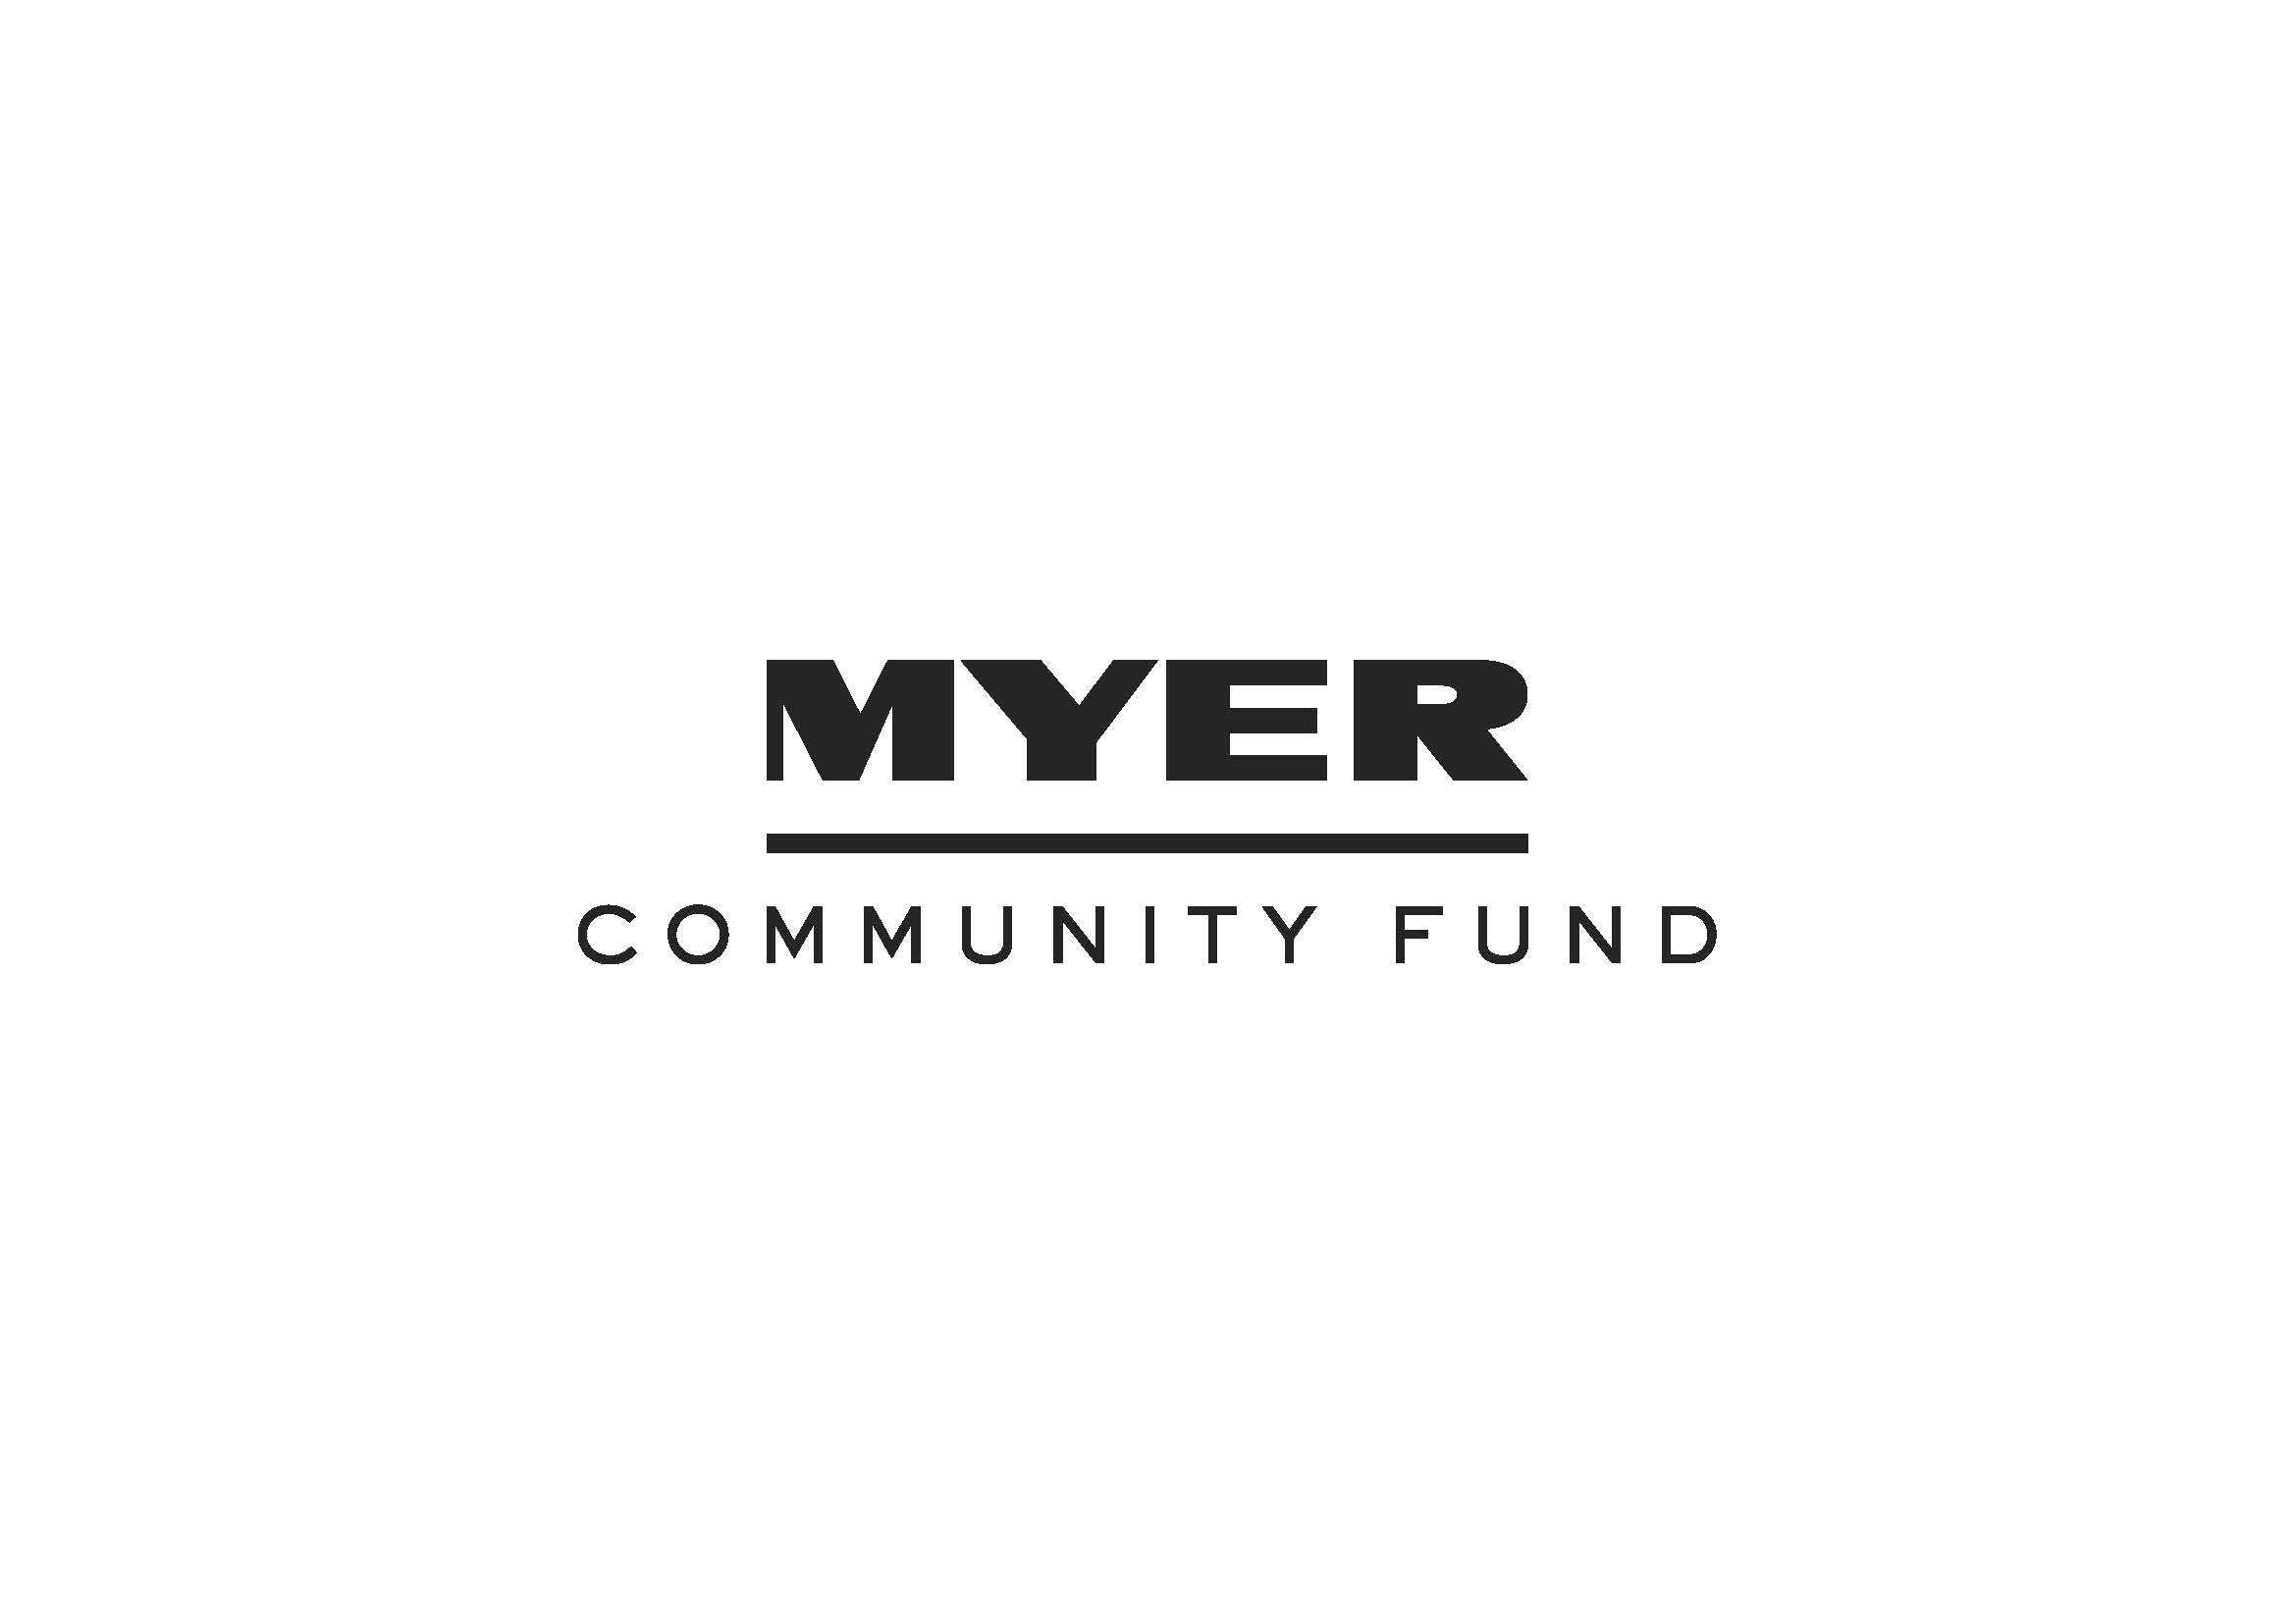 Myer Community Fund